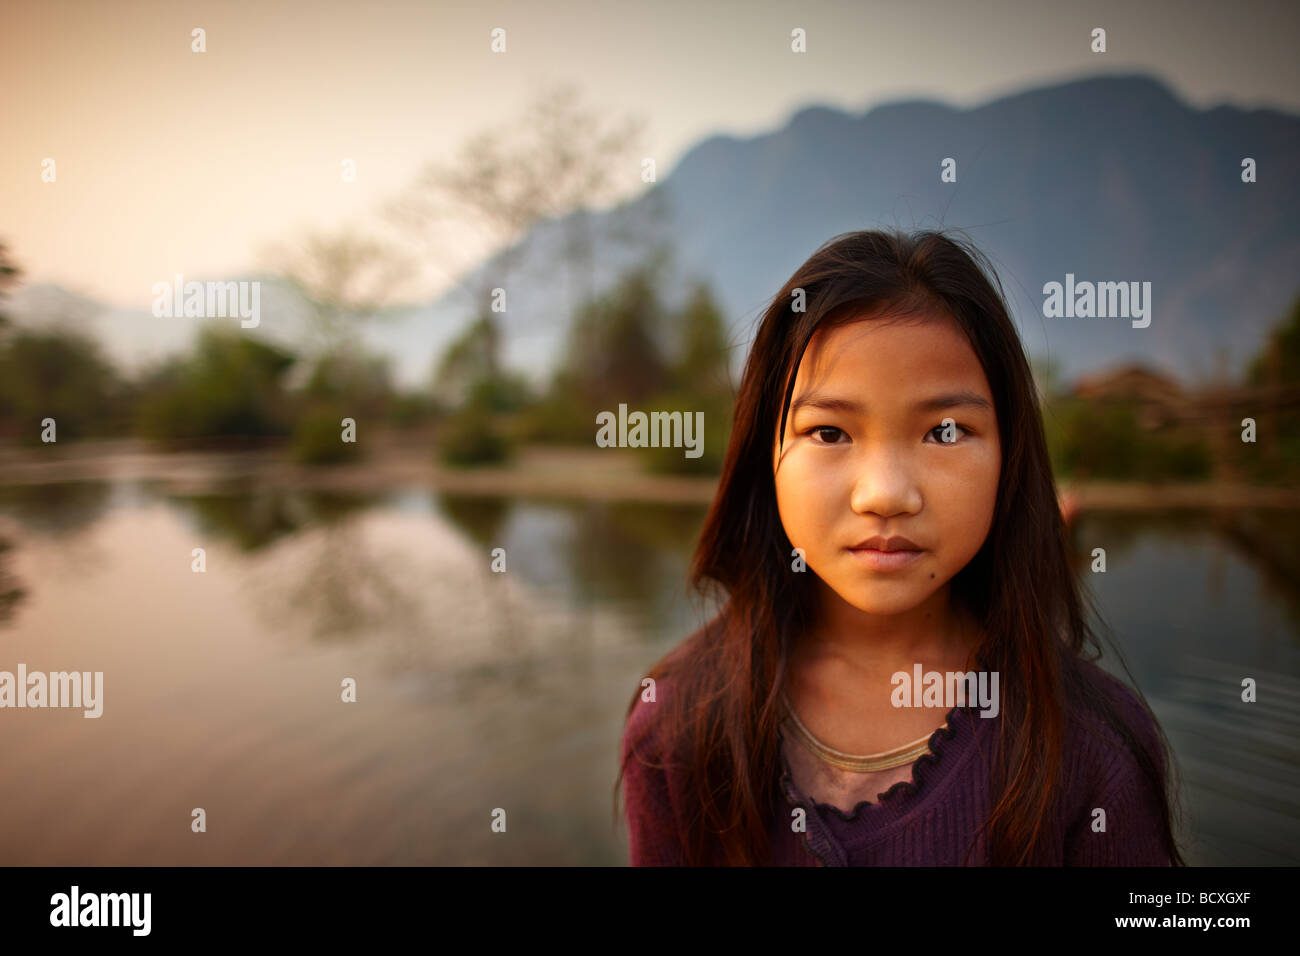 portrait of a girl nr Vang Vieng, Laos - Stock Image